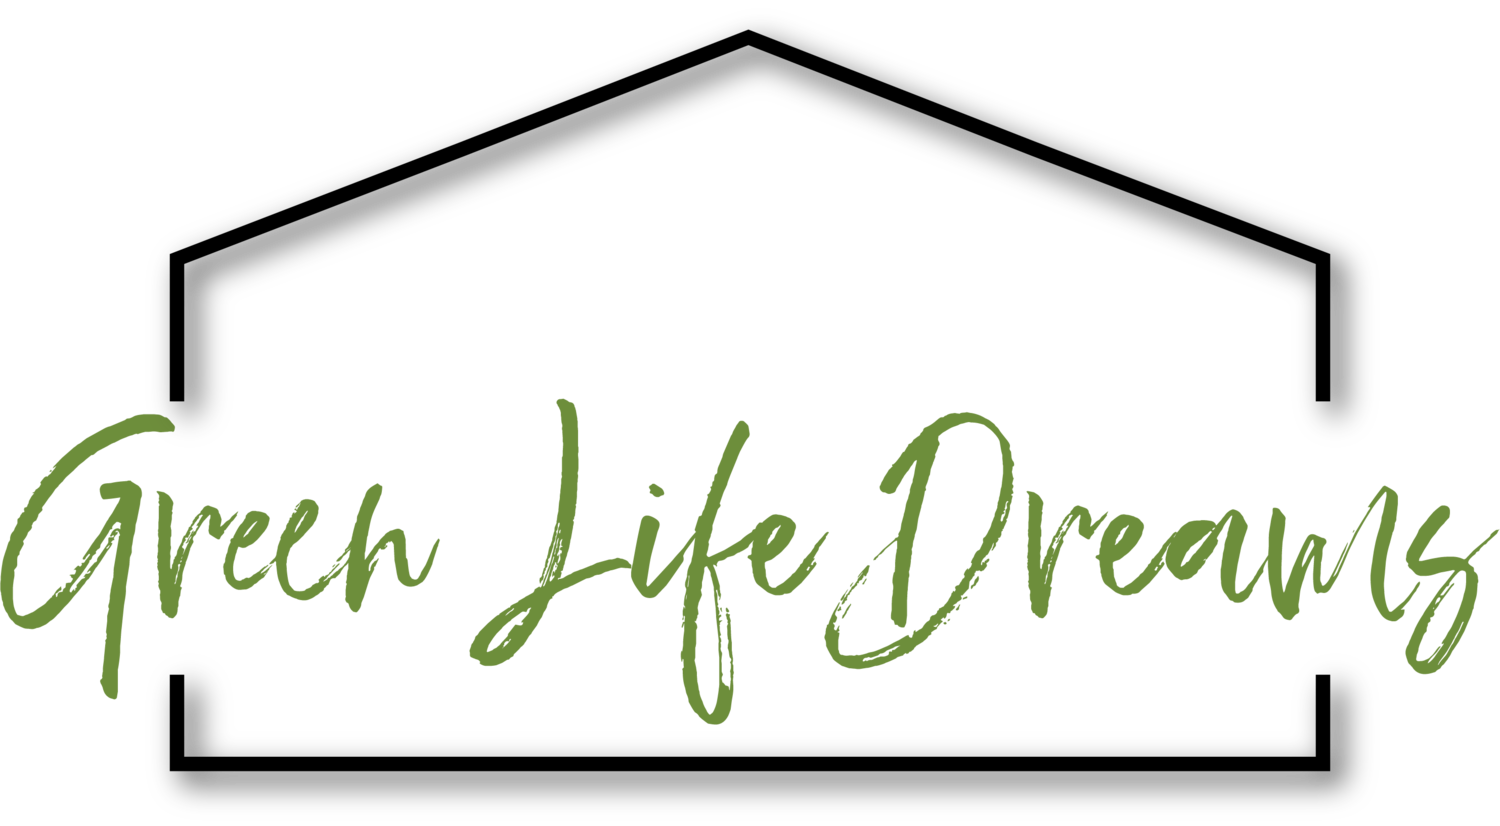 Green Life Dreams